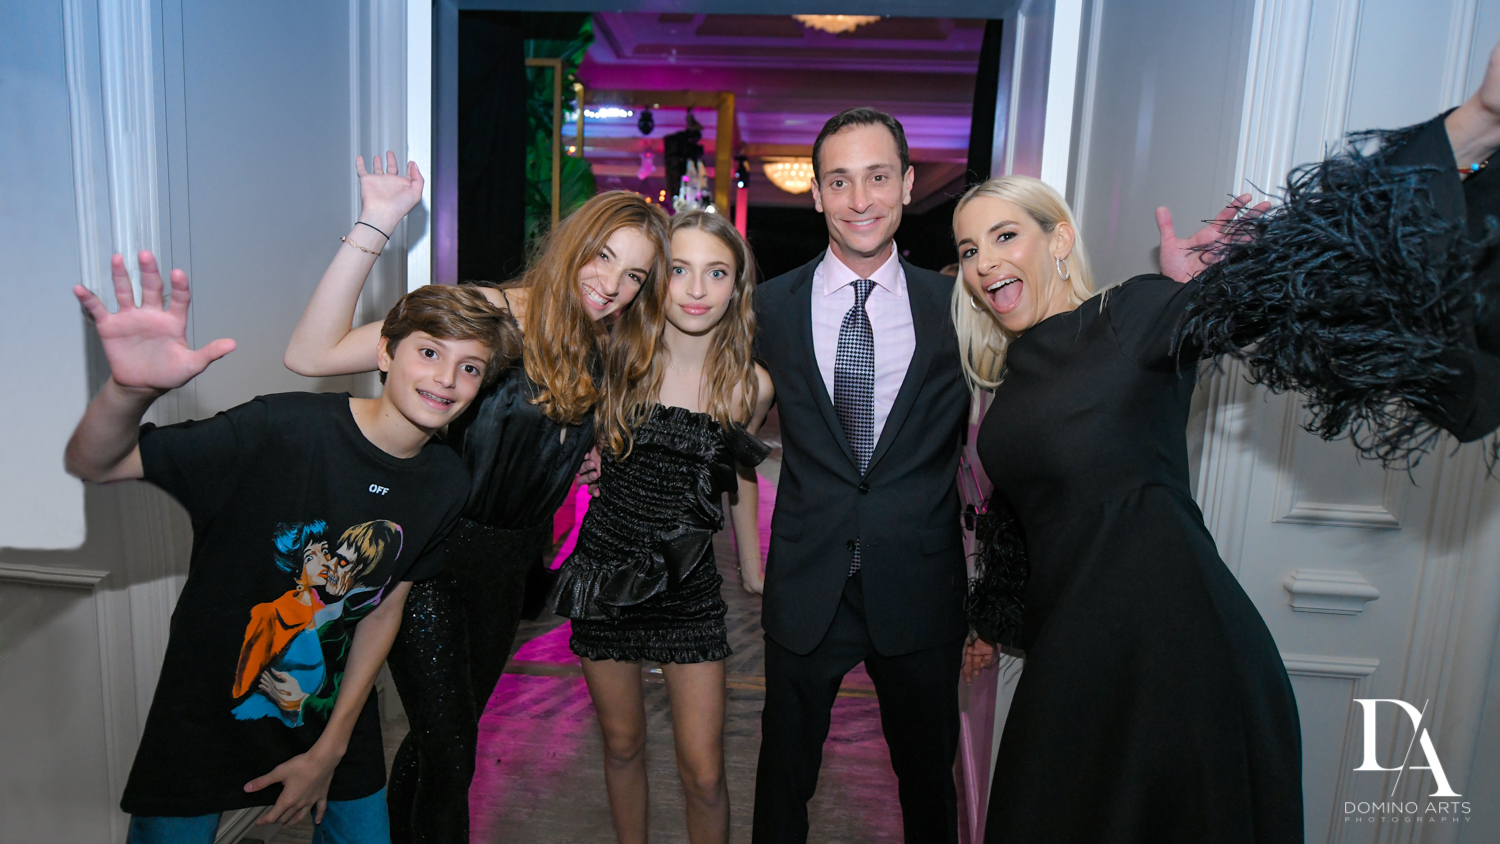 fun family photos at Designer invitations at Stylish Architectural B'Nai Mitzvah at the NEW JW Marriott Miami Turnberry Resort & Spa by Domino Arts Photography